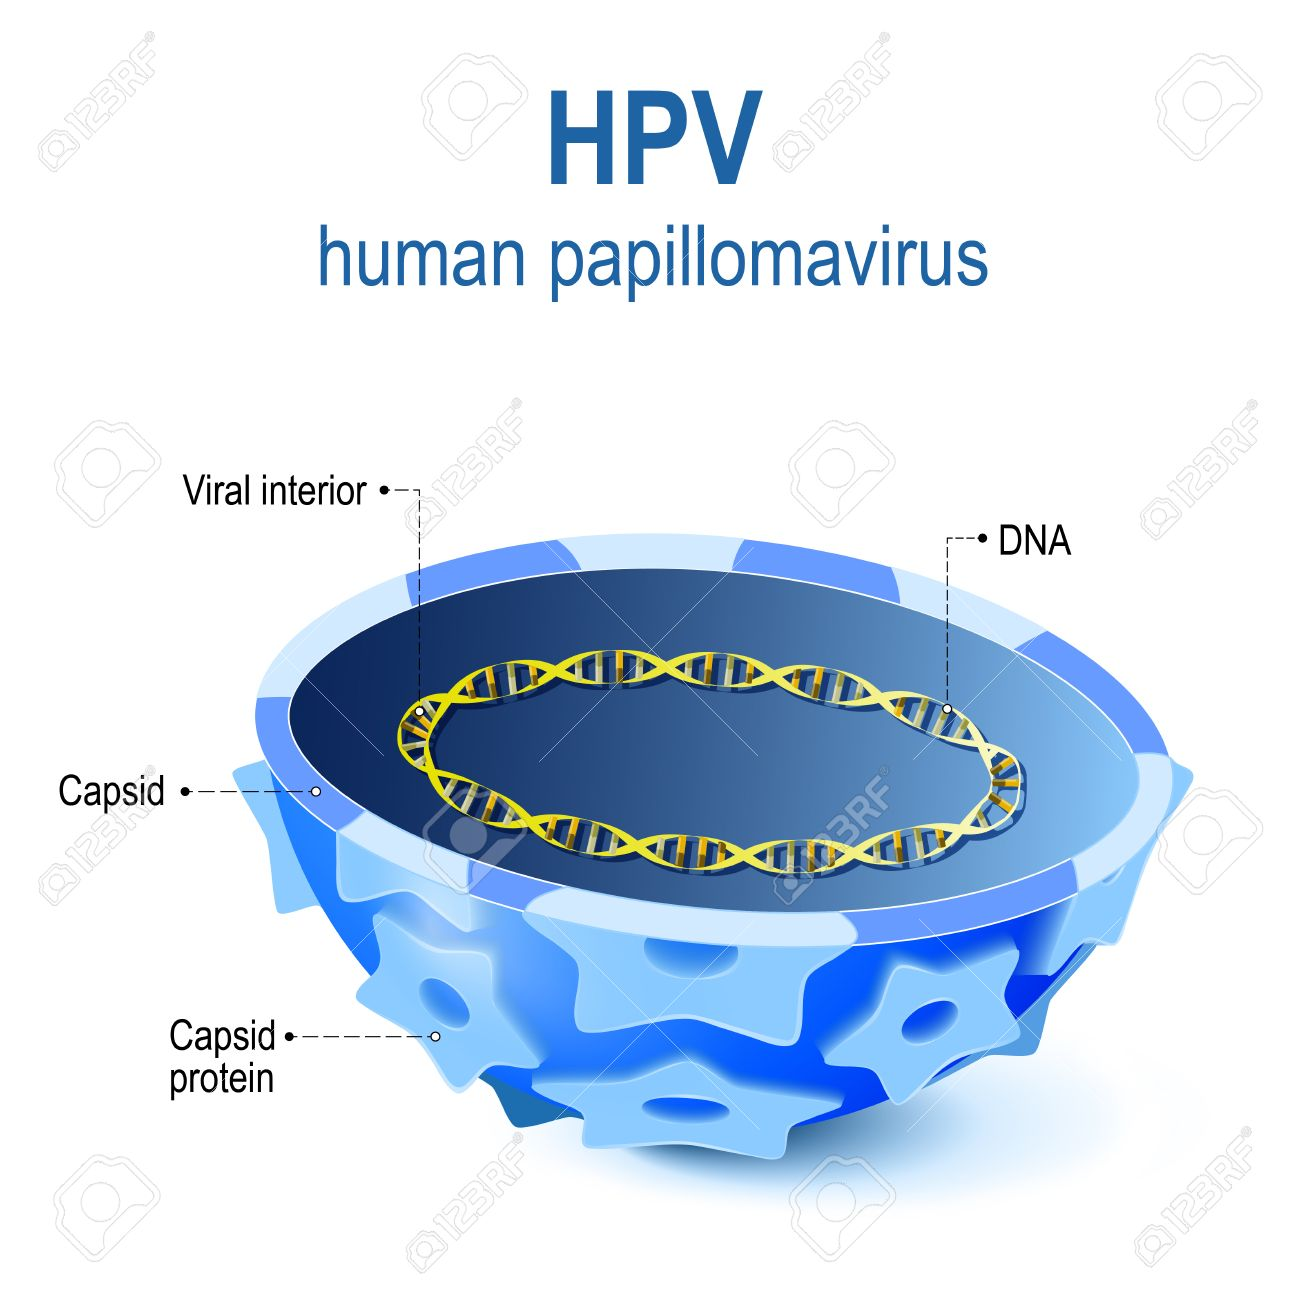 hpv virus diagram